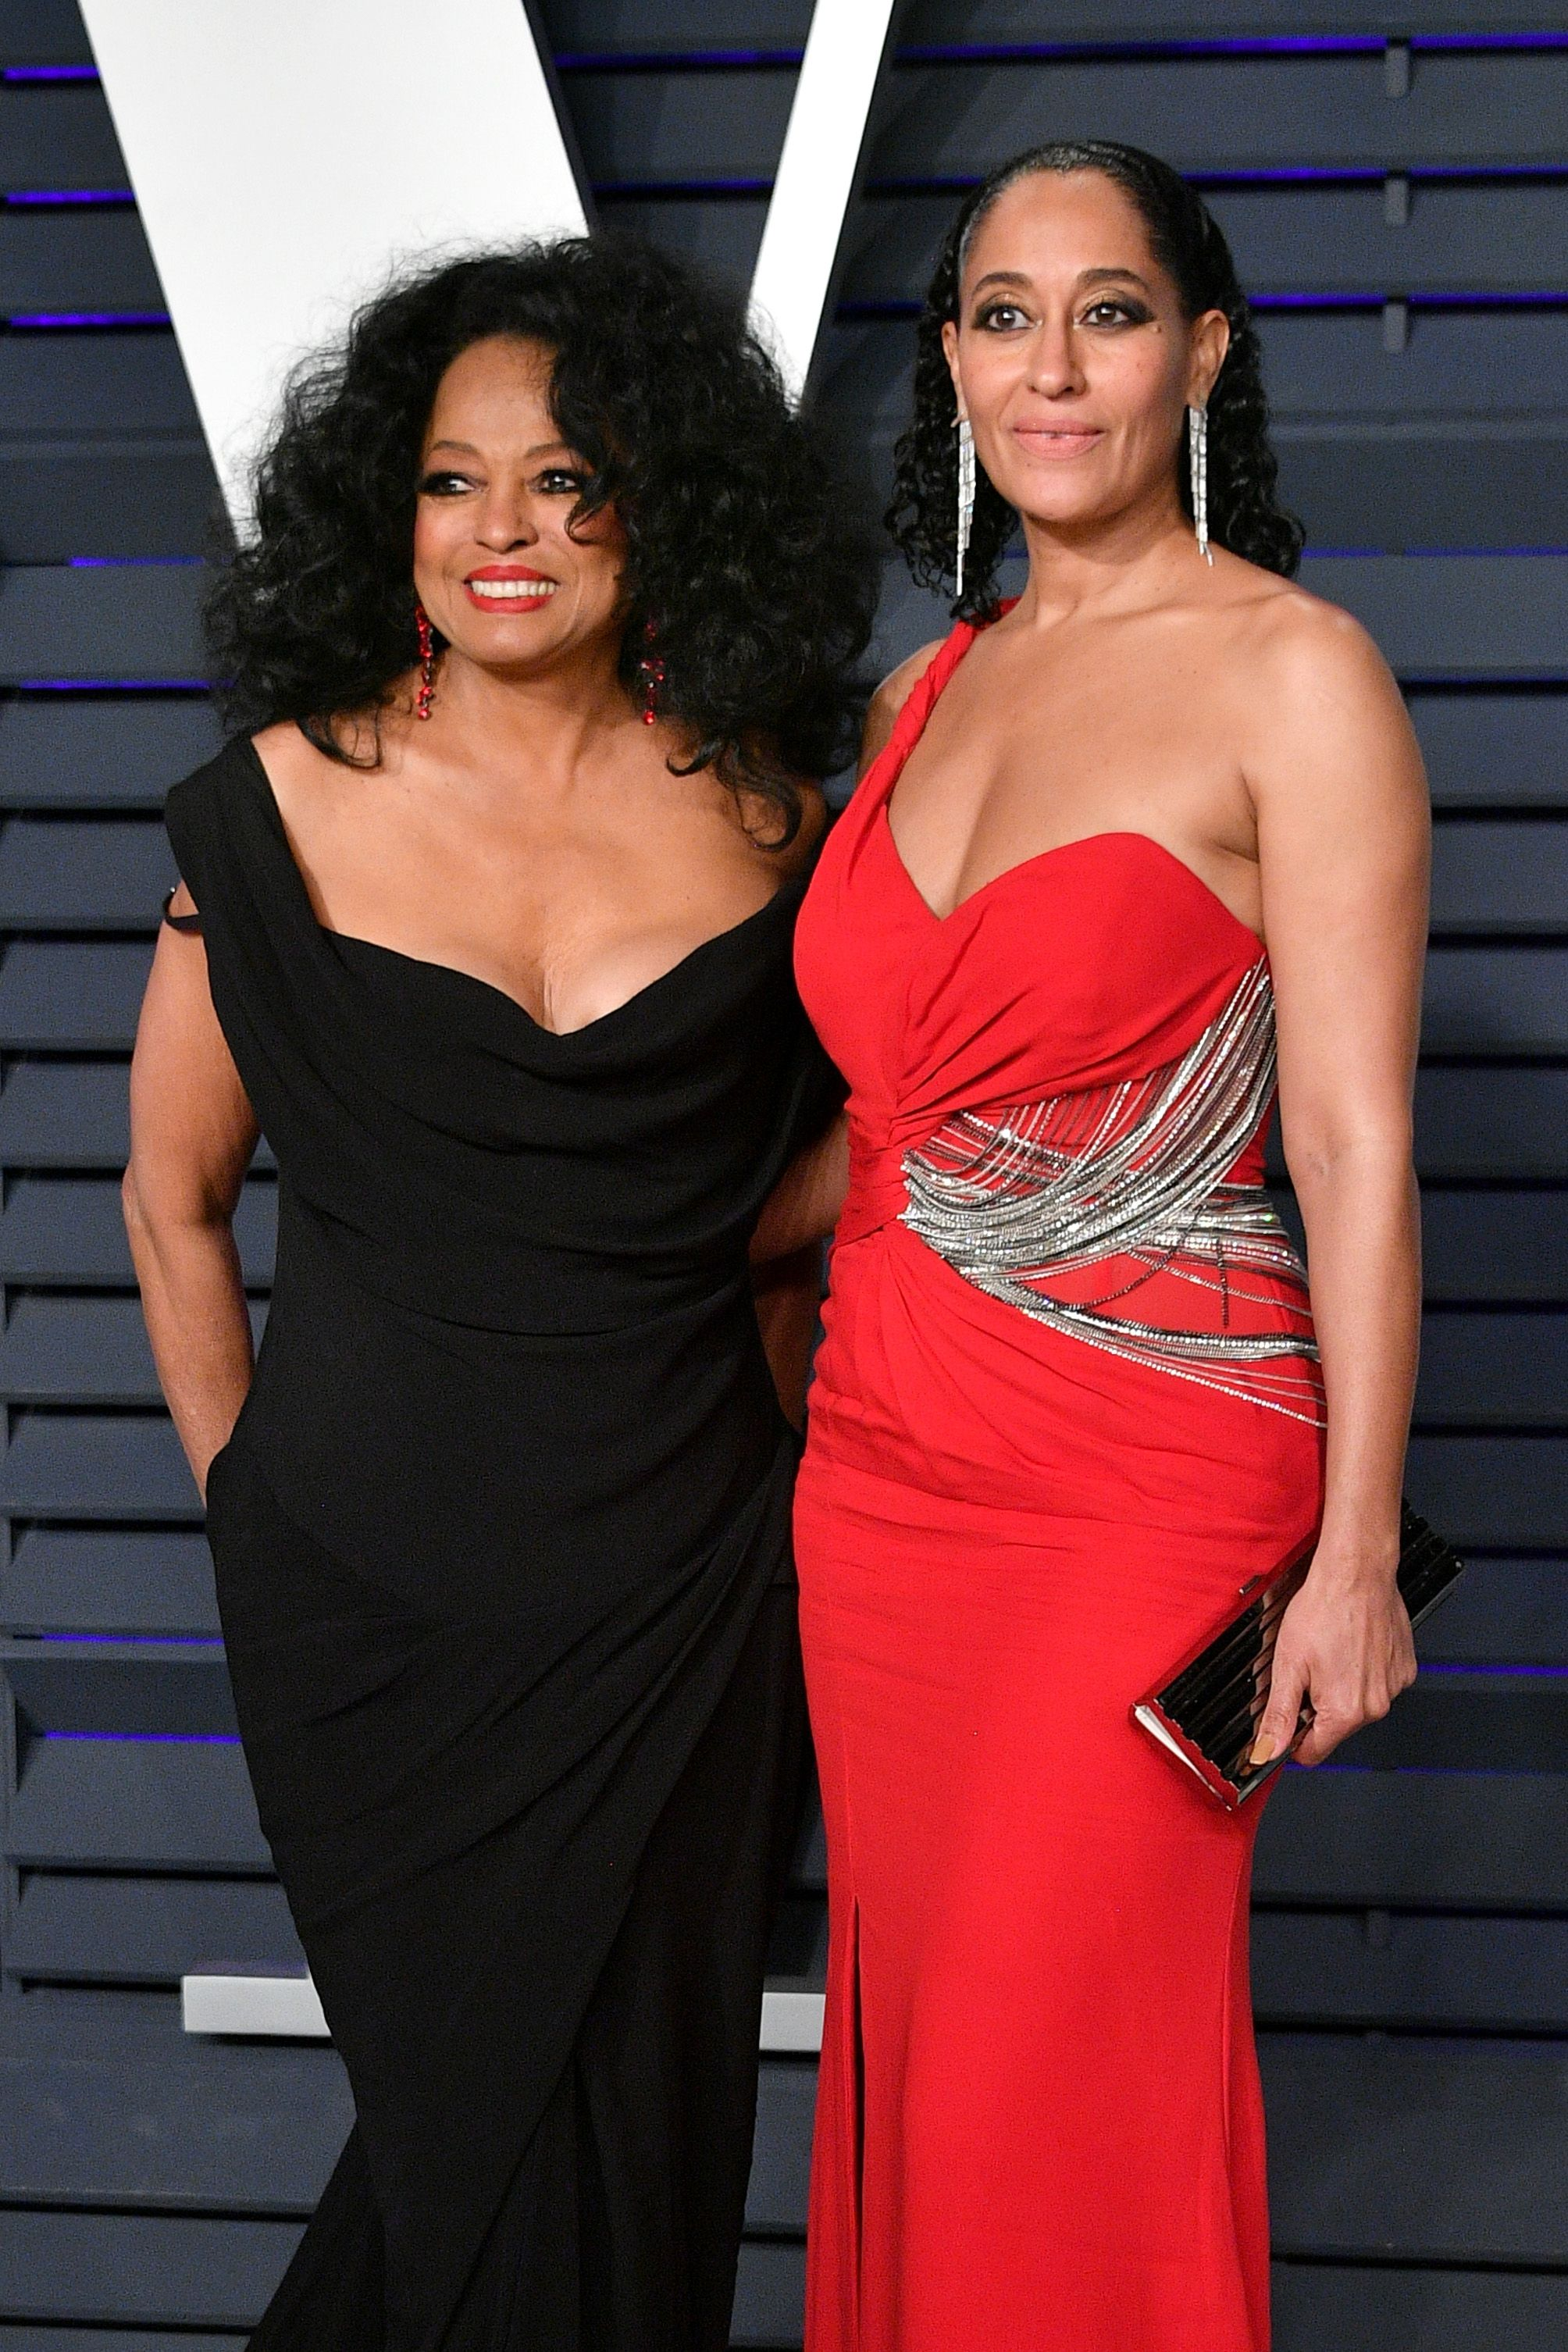 Diana Ross & Tracee Ellis Ross at the Vanity Fair Oscar Party on February 24, 2019 in California | Photo: Getty Images